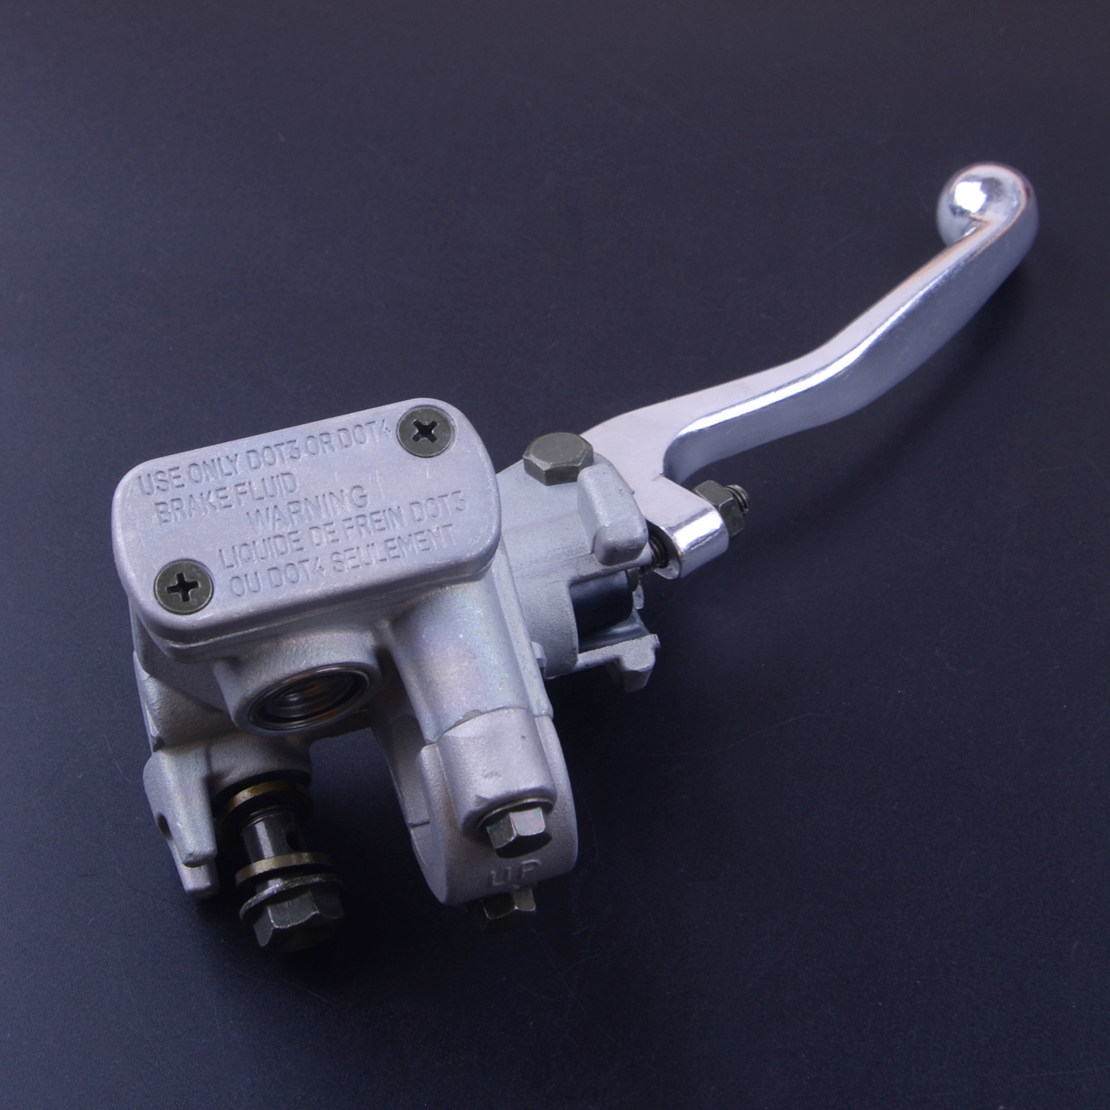 CITALL Brake-Master-Cylinder Crf 450r CRF250X Motorcycle 2006 Front 2005 Honda Cr125r title=